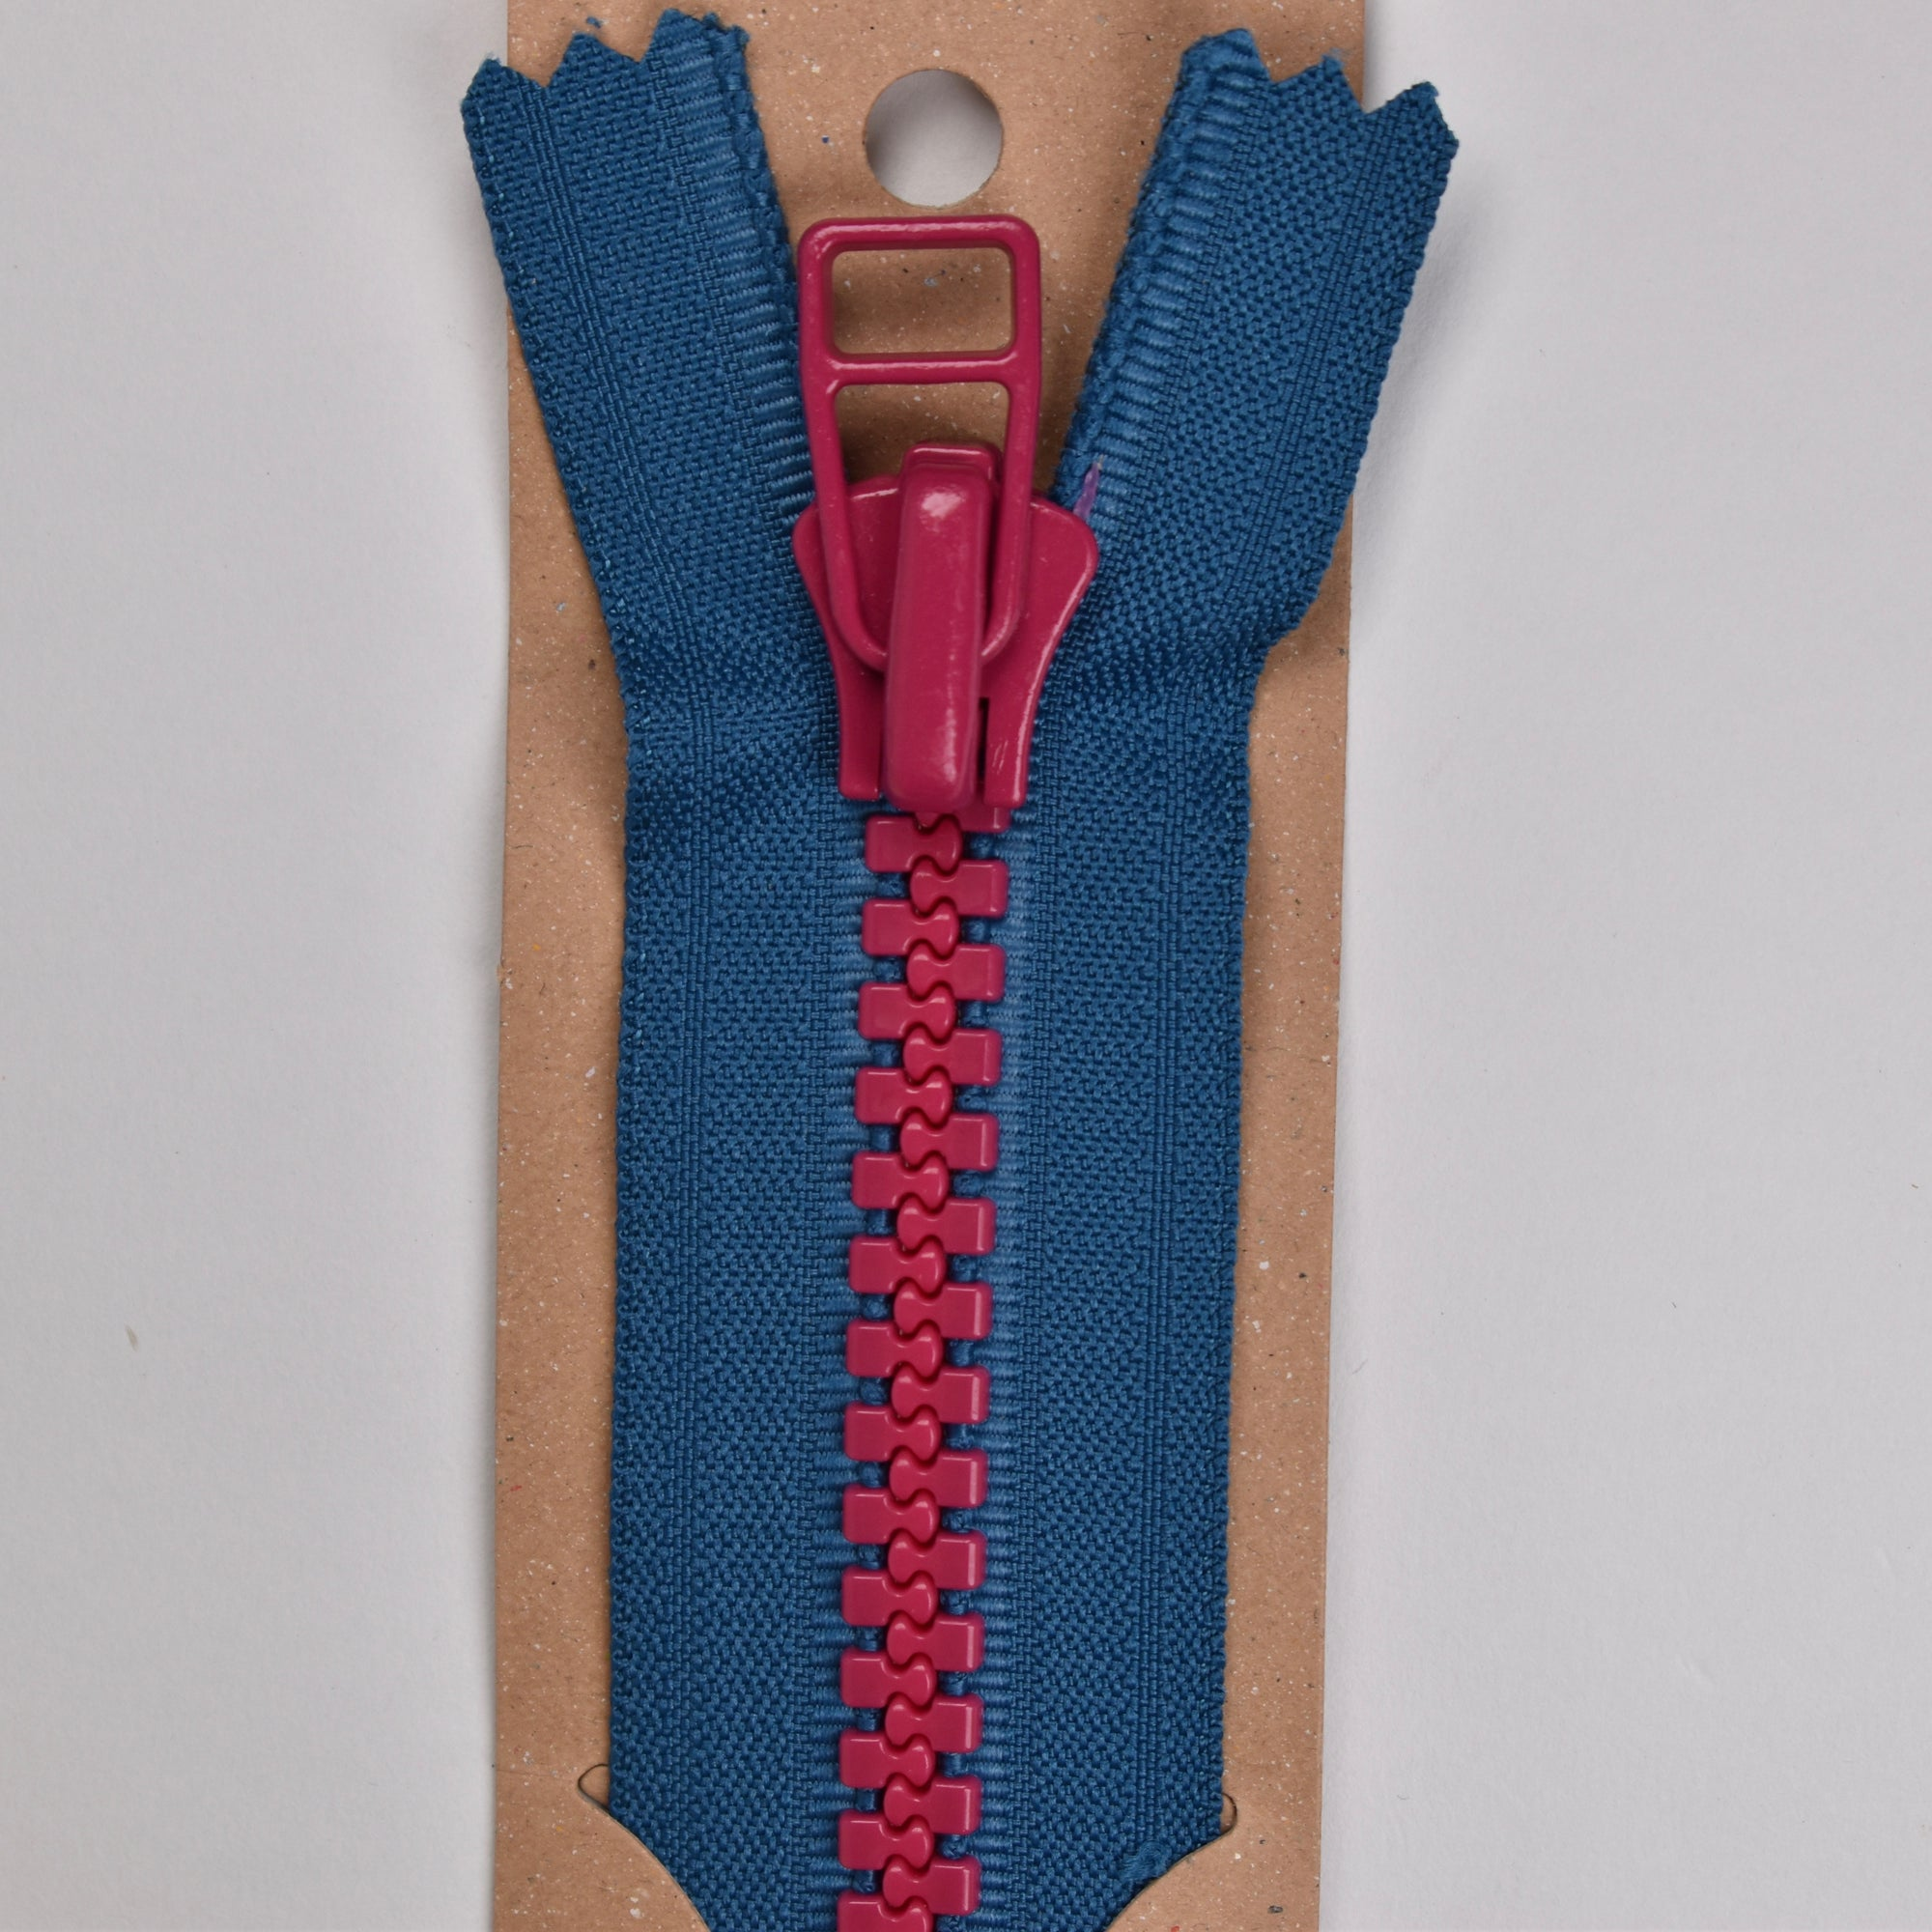 Colour Cocktails Zip (28cm) with Square fastener